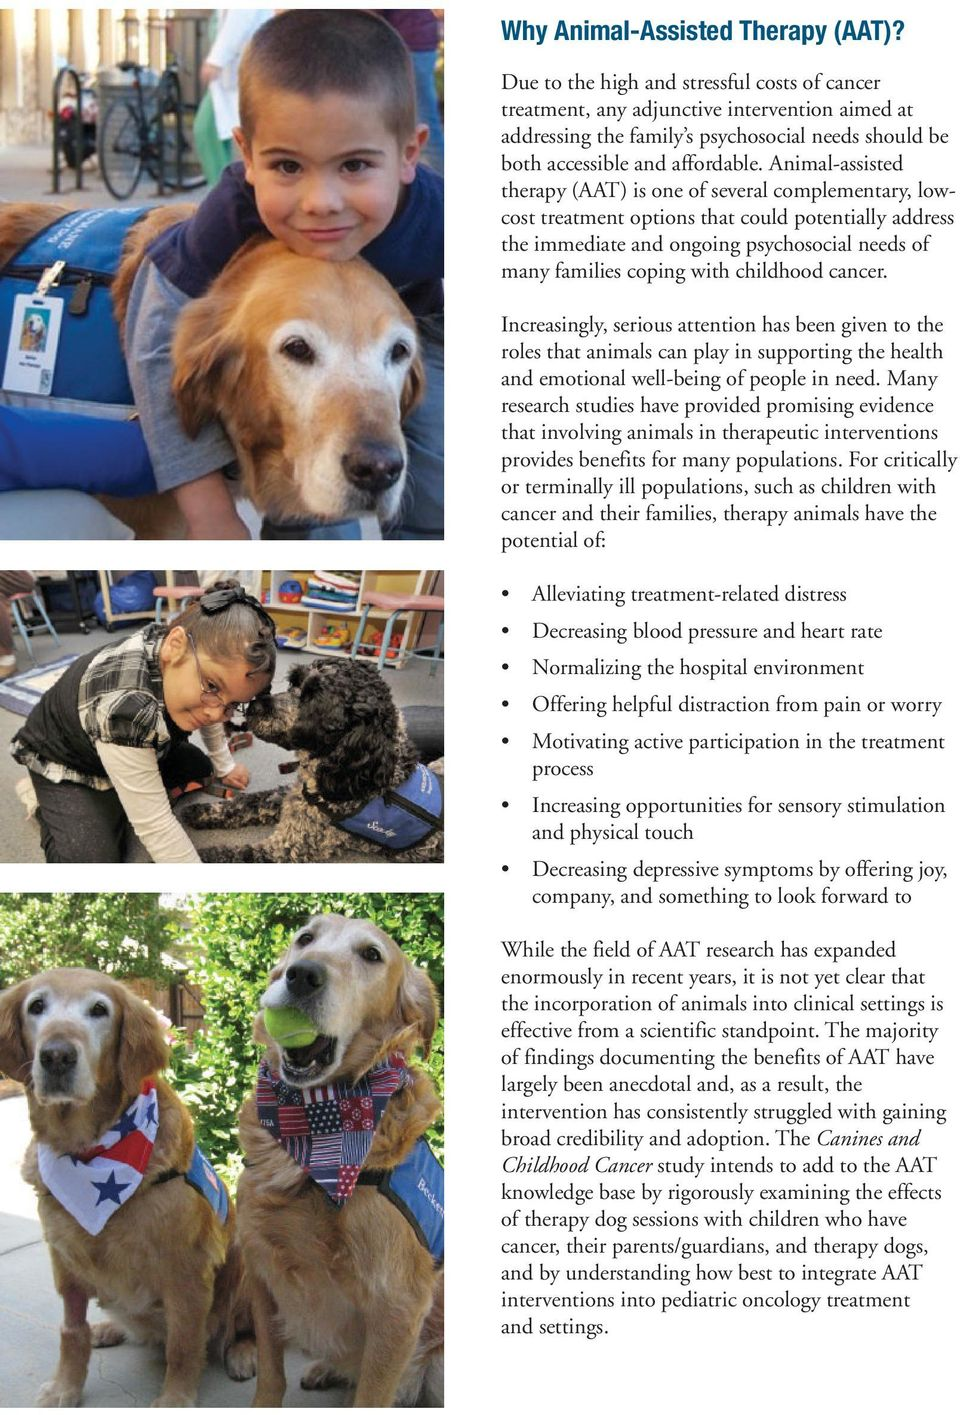 Animal-assisted therapy (AAT) is one of several complementary, lowcost treatment options that could potentially address the immediate and ongoing psychosocial needs of many families coping with